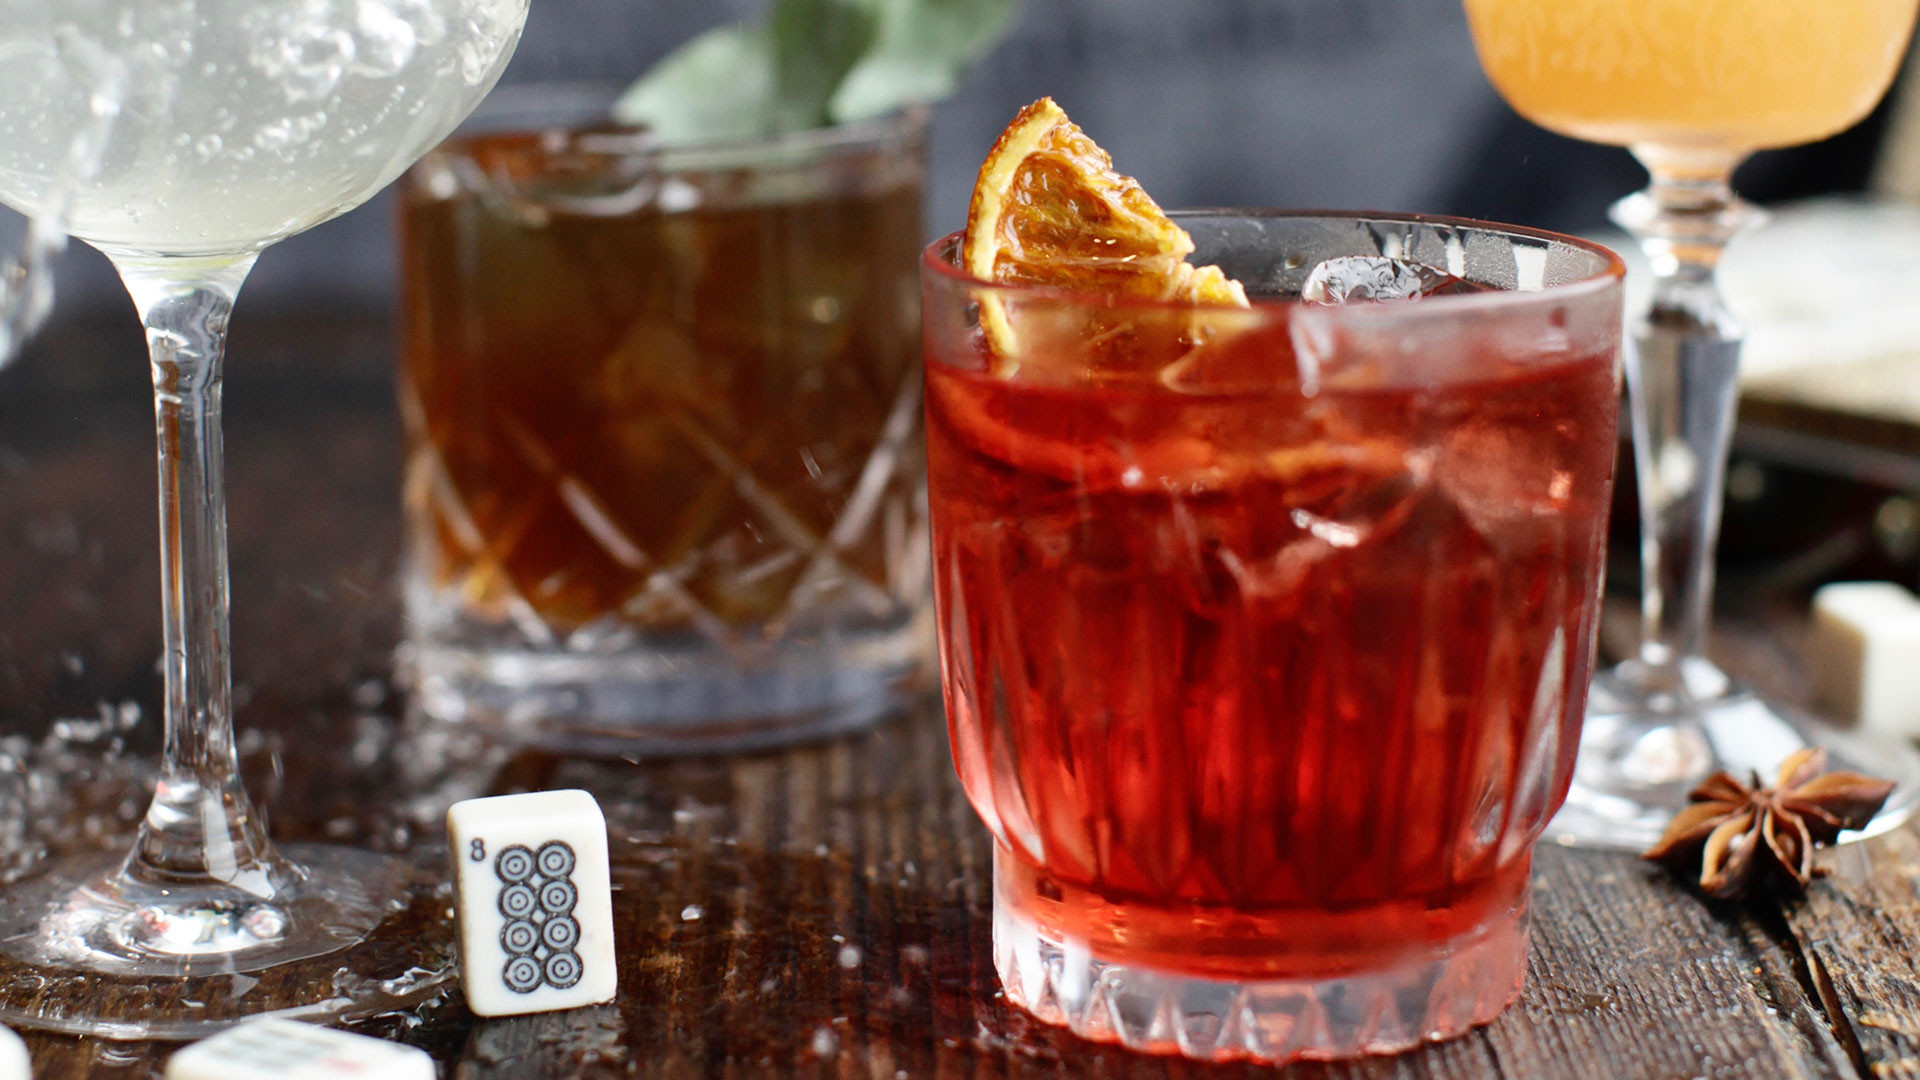 Barrel-aged plum wine negroni made from campari, gin, plum wine and chocolate bitters